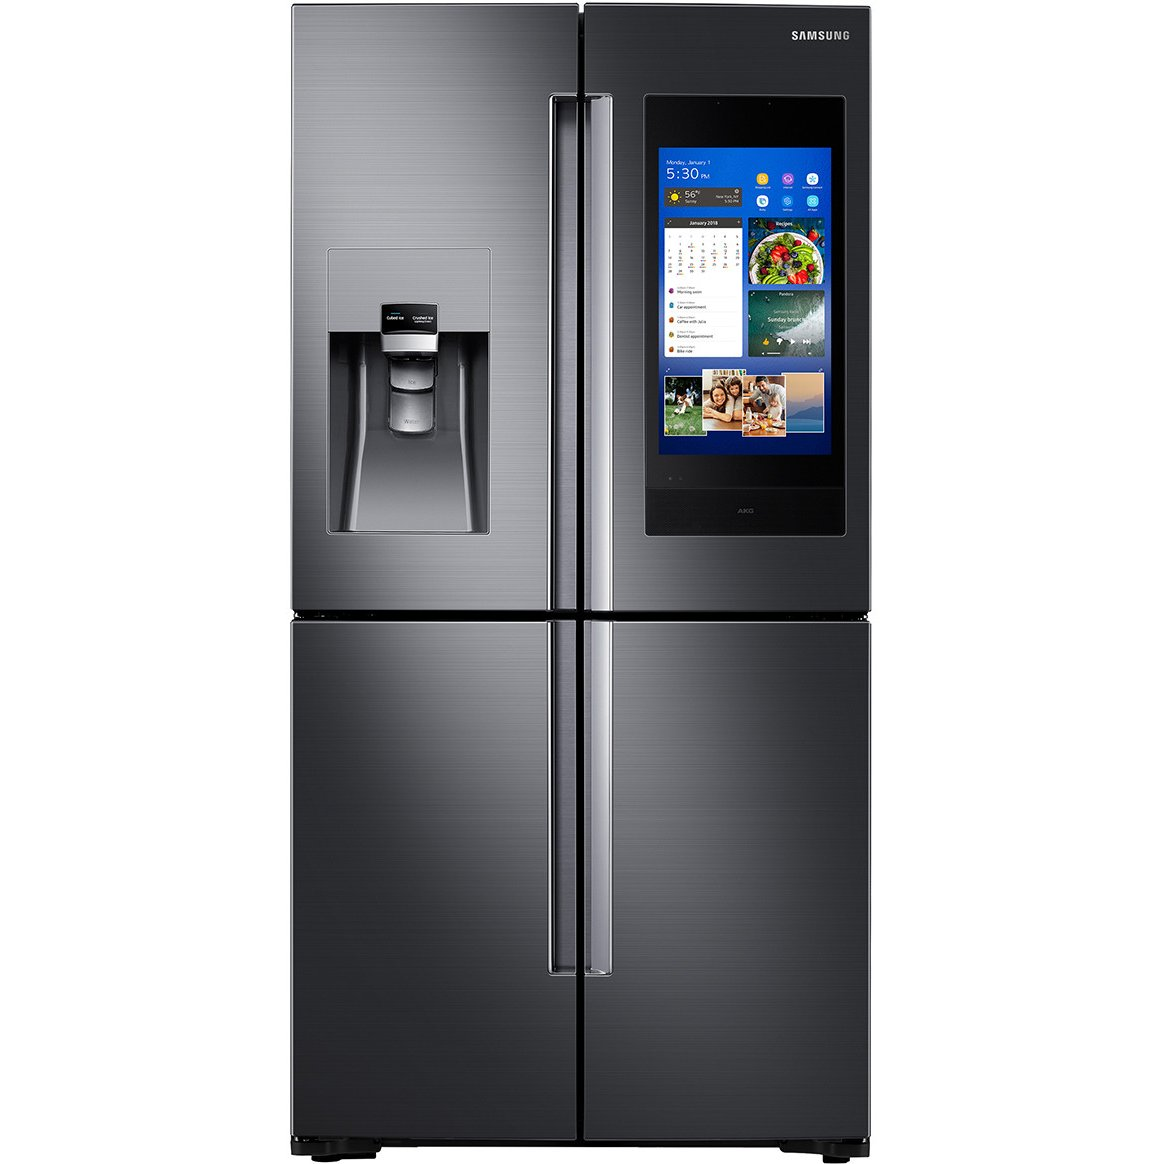 Samsung 28 Cu Ft French Door Smart Refrigerator 36 Inch Black Stainless Steel Rc Willey Furniture